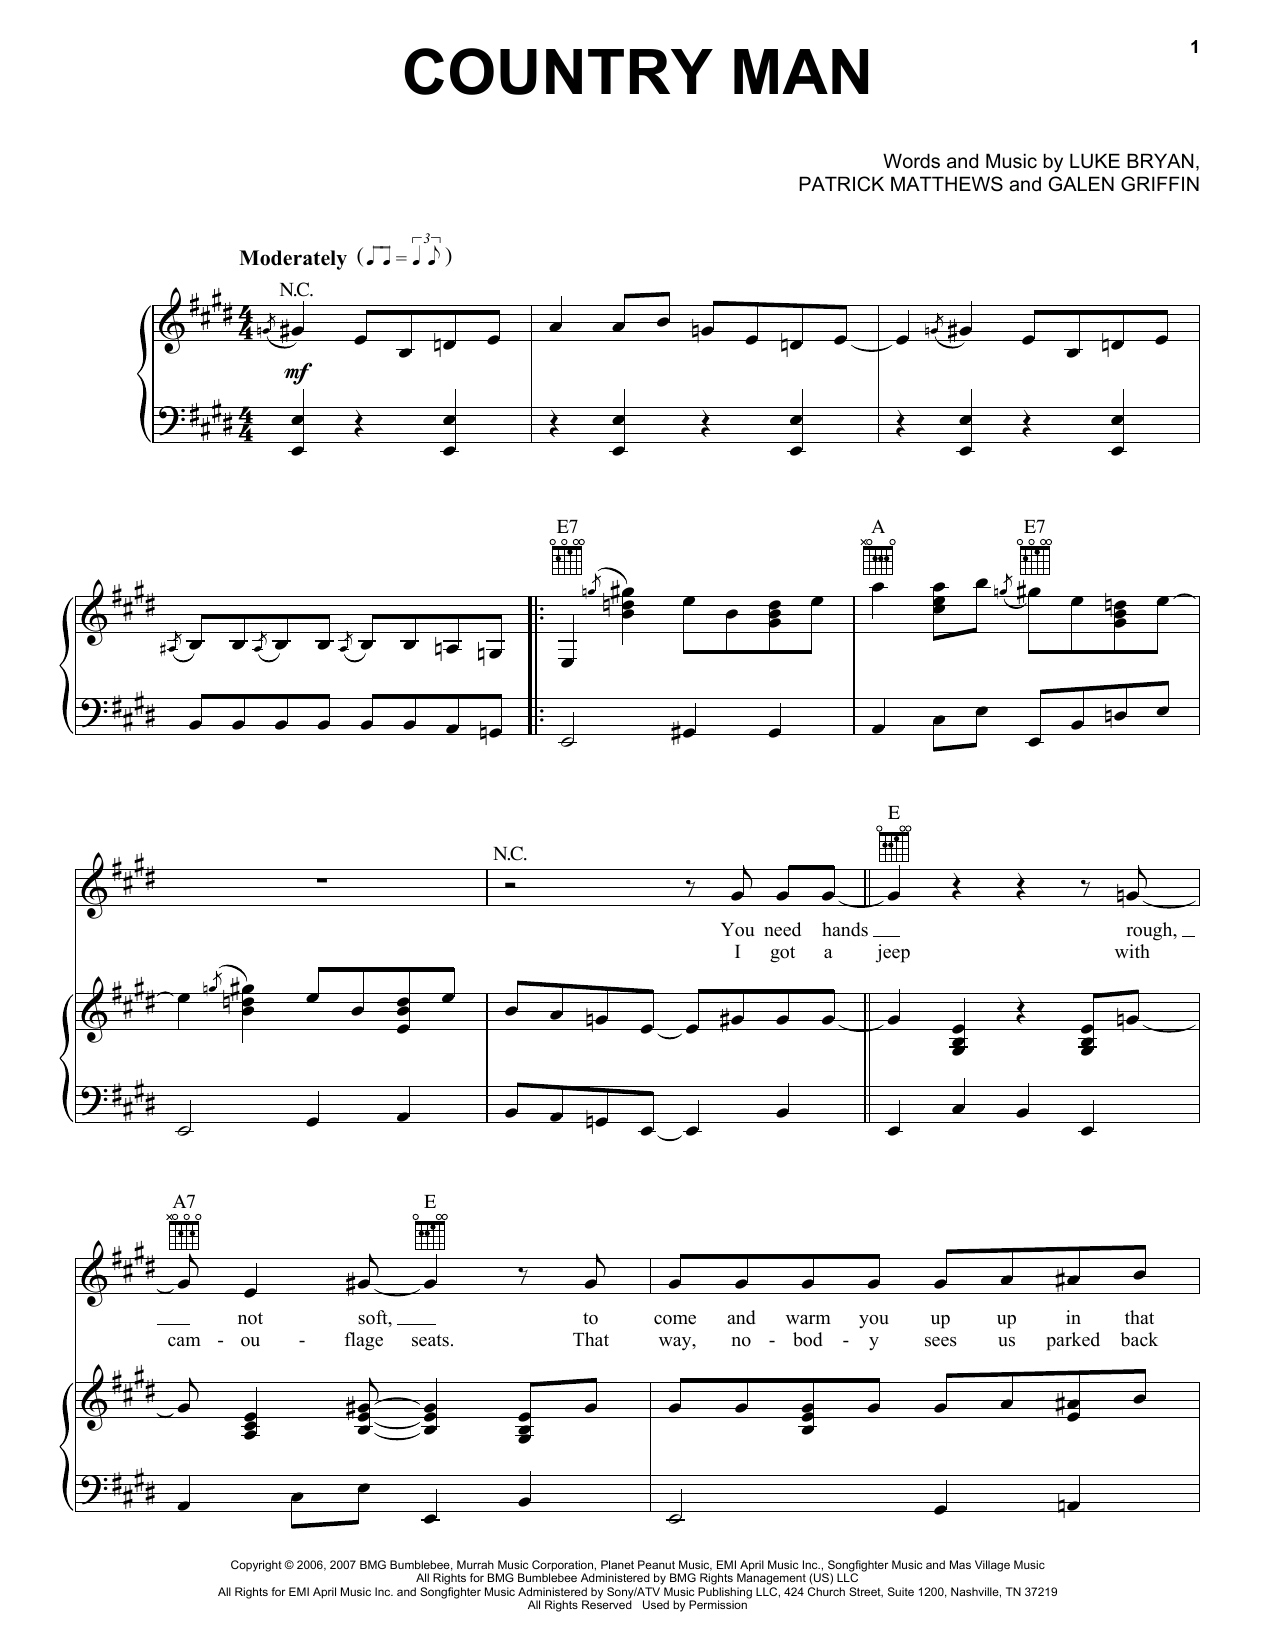 Country Man sheet music for voice, piano or guitar by Patrick Matthews